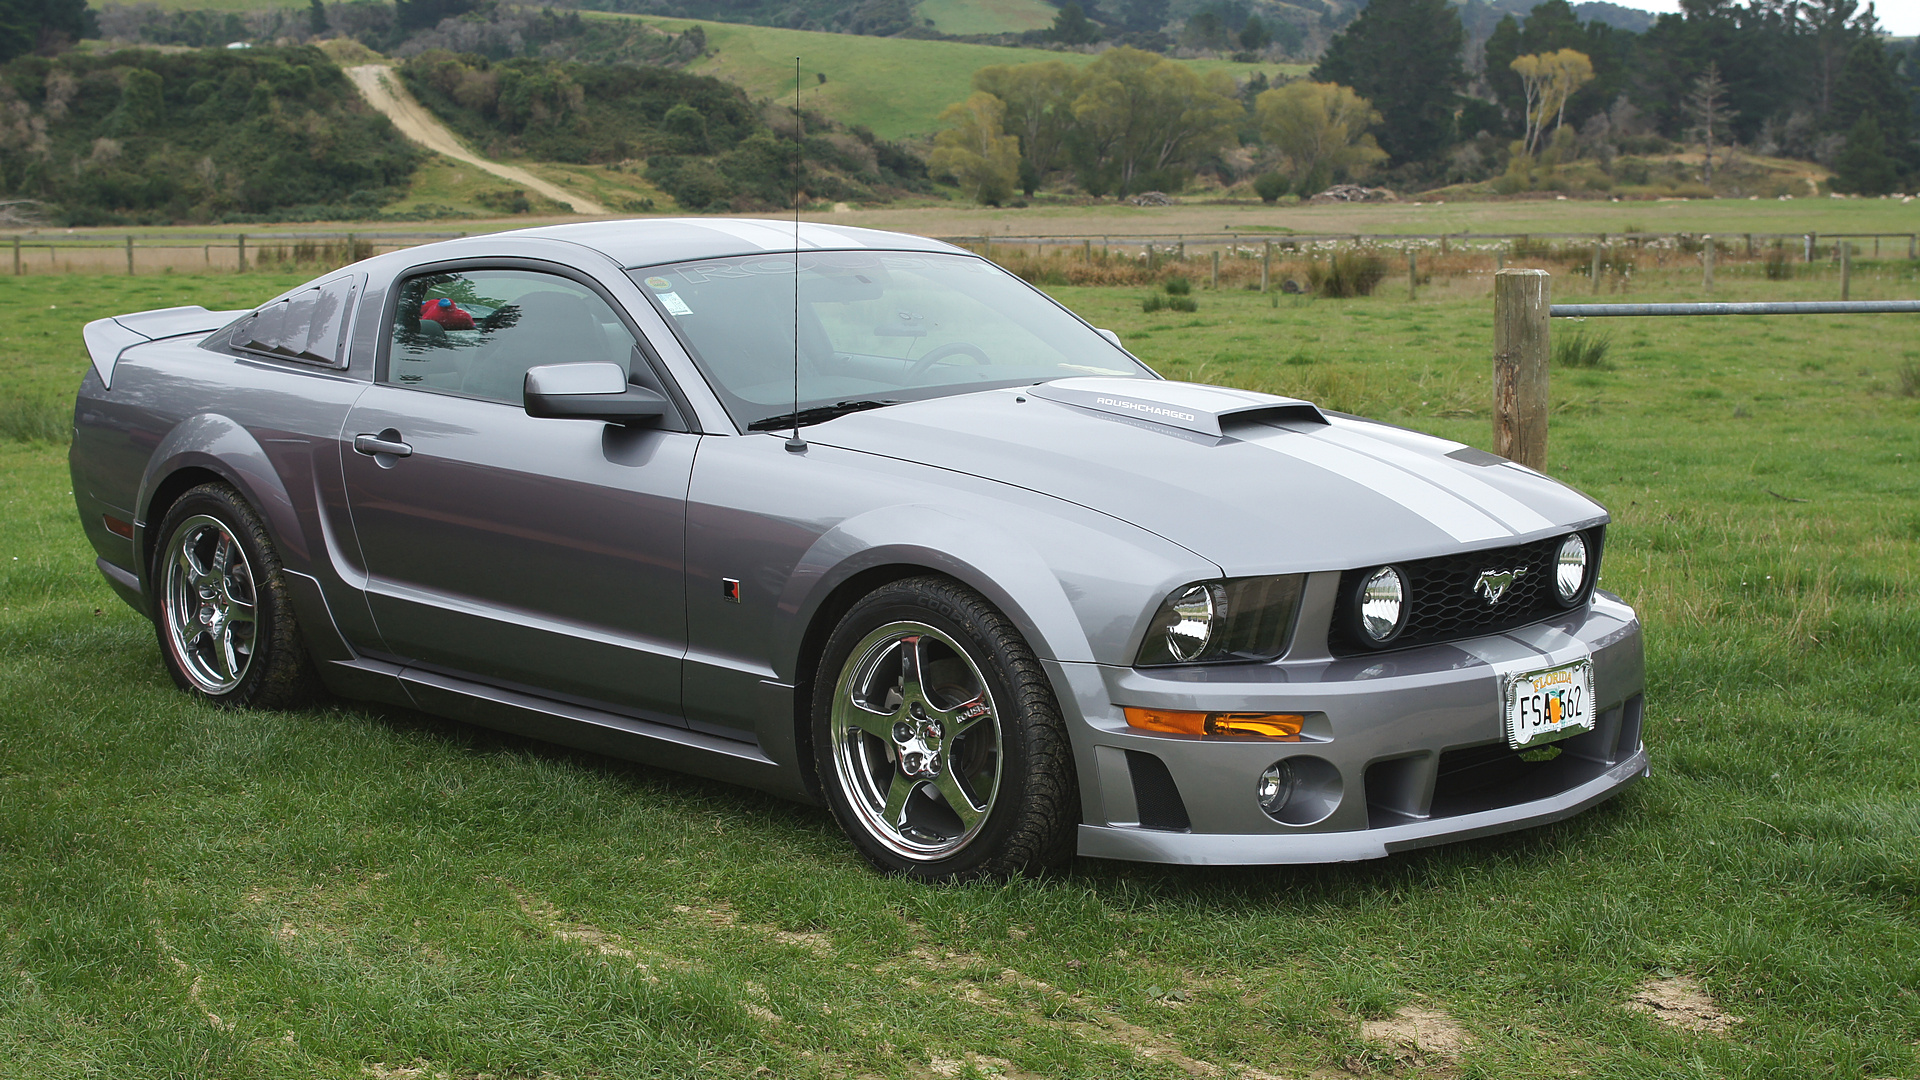 2006 ford mustang roush the annual drag racing was held flickr. Black Bedroom Furniture Sets. Home Design Ideas